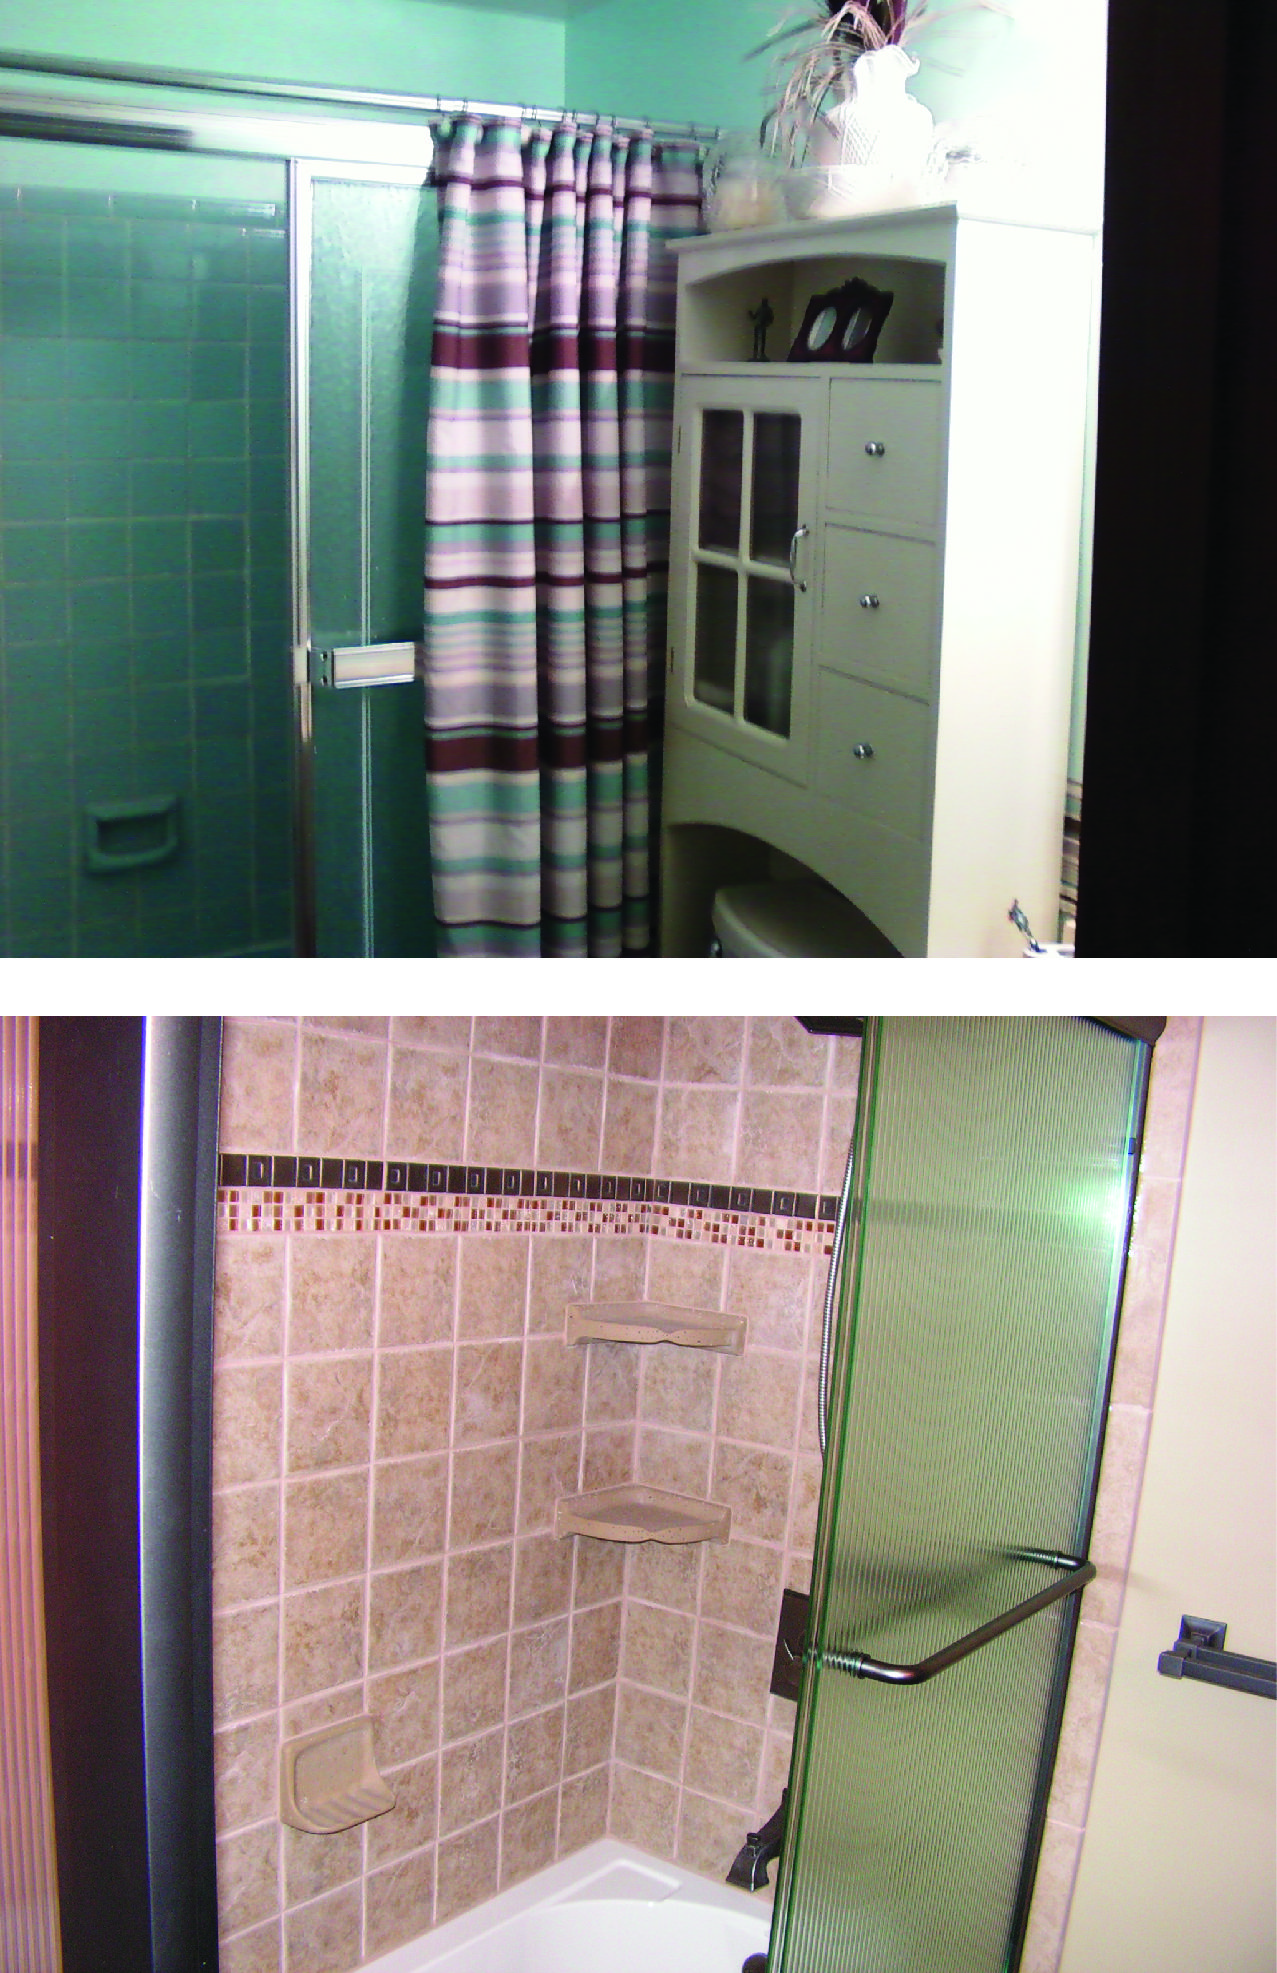 To Learn More About South Pittsburgh Pennsylvania's Bathroom Amusing Bathroom Remodeling Service Inspiration